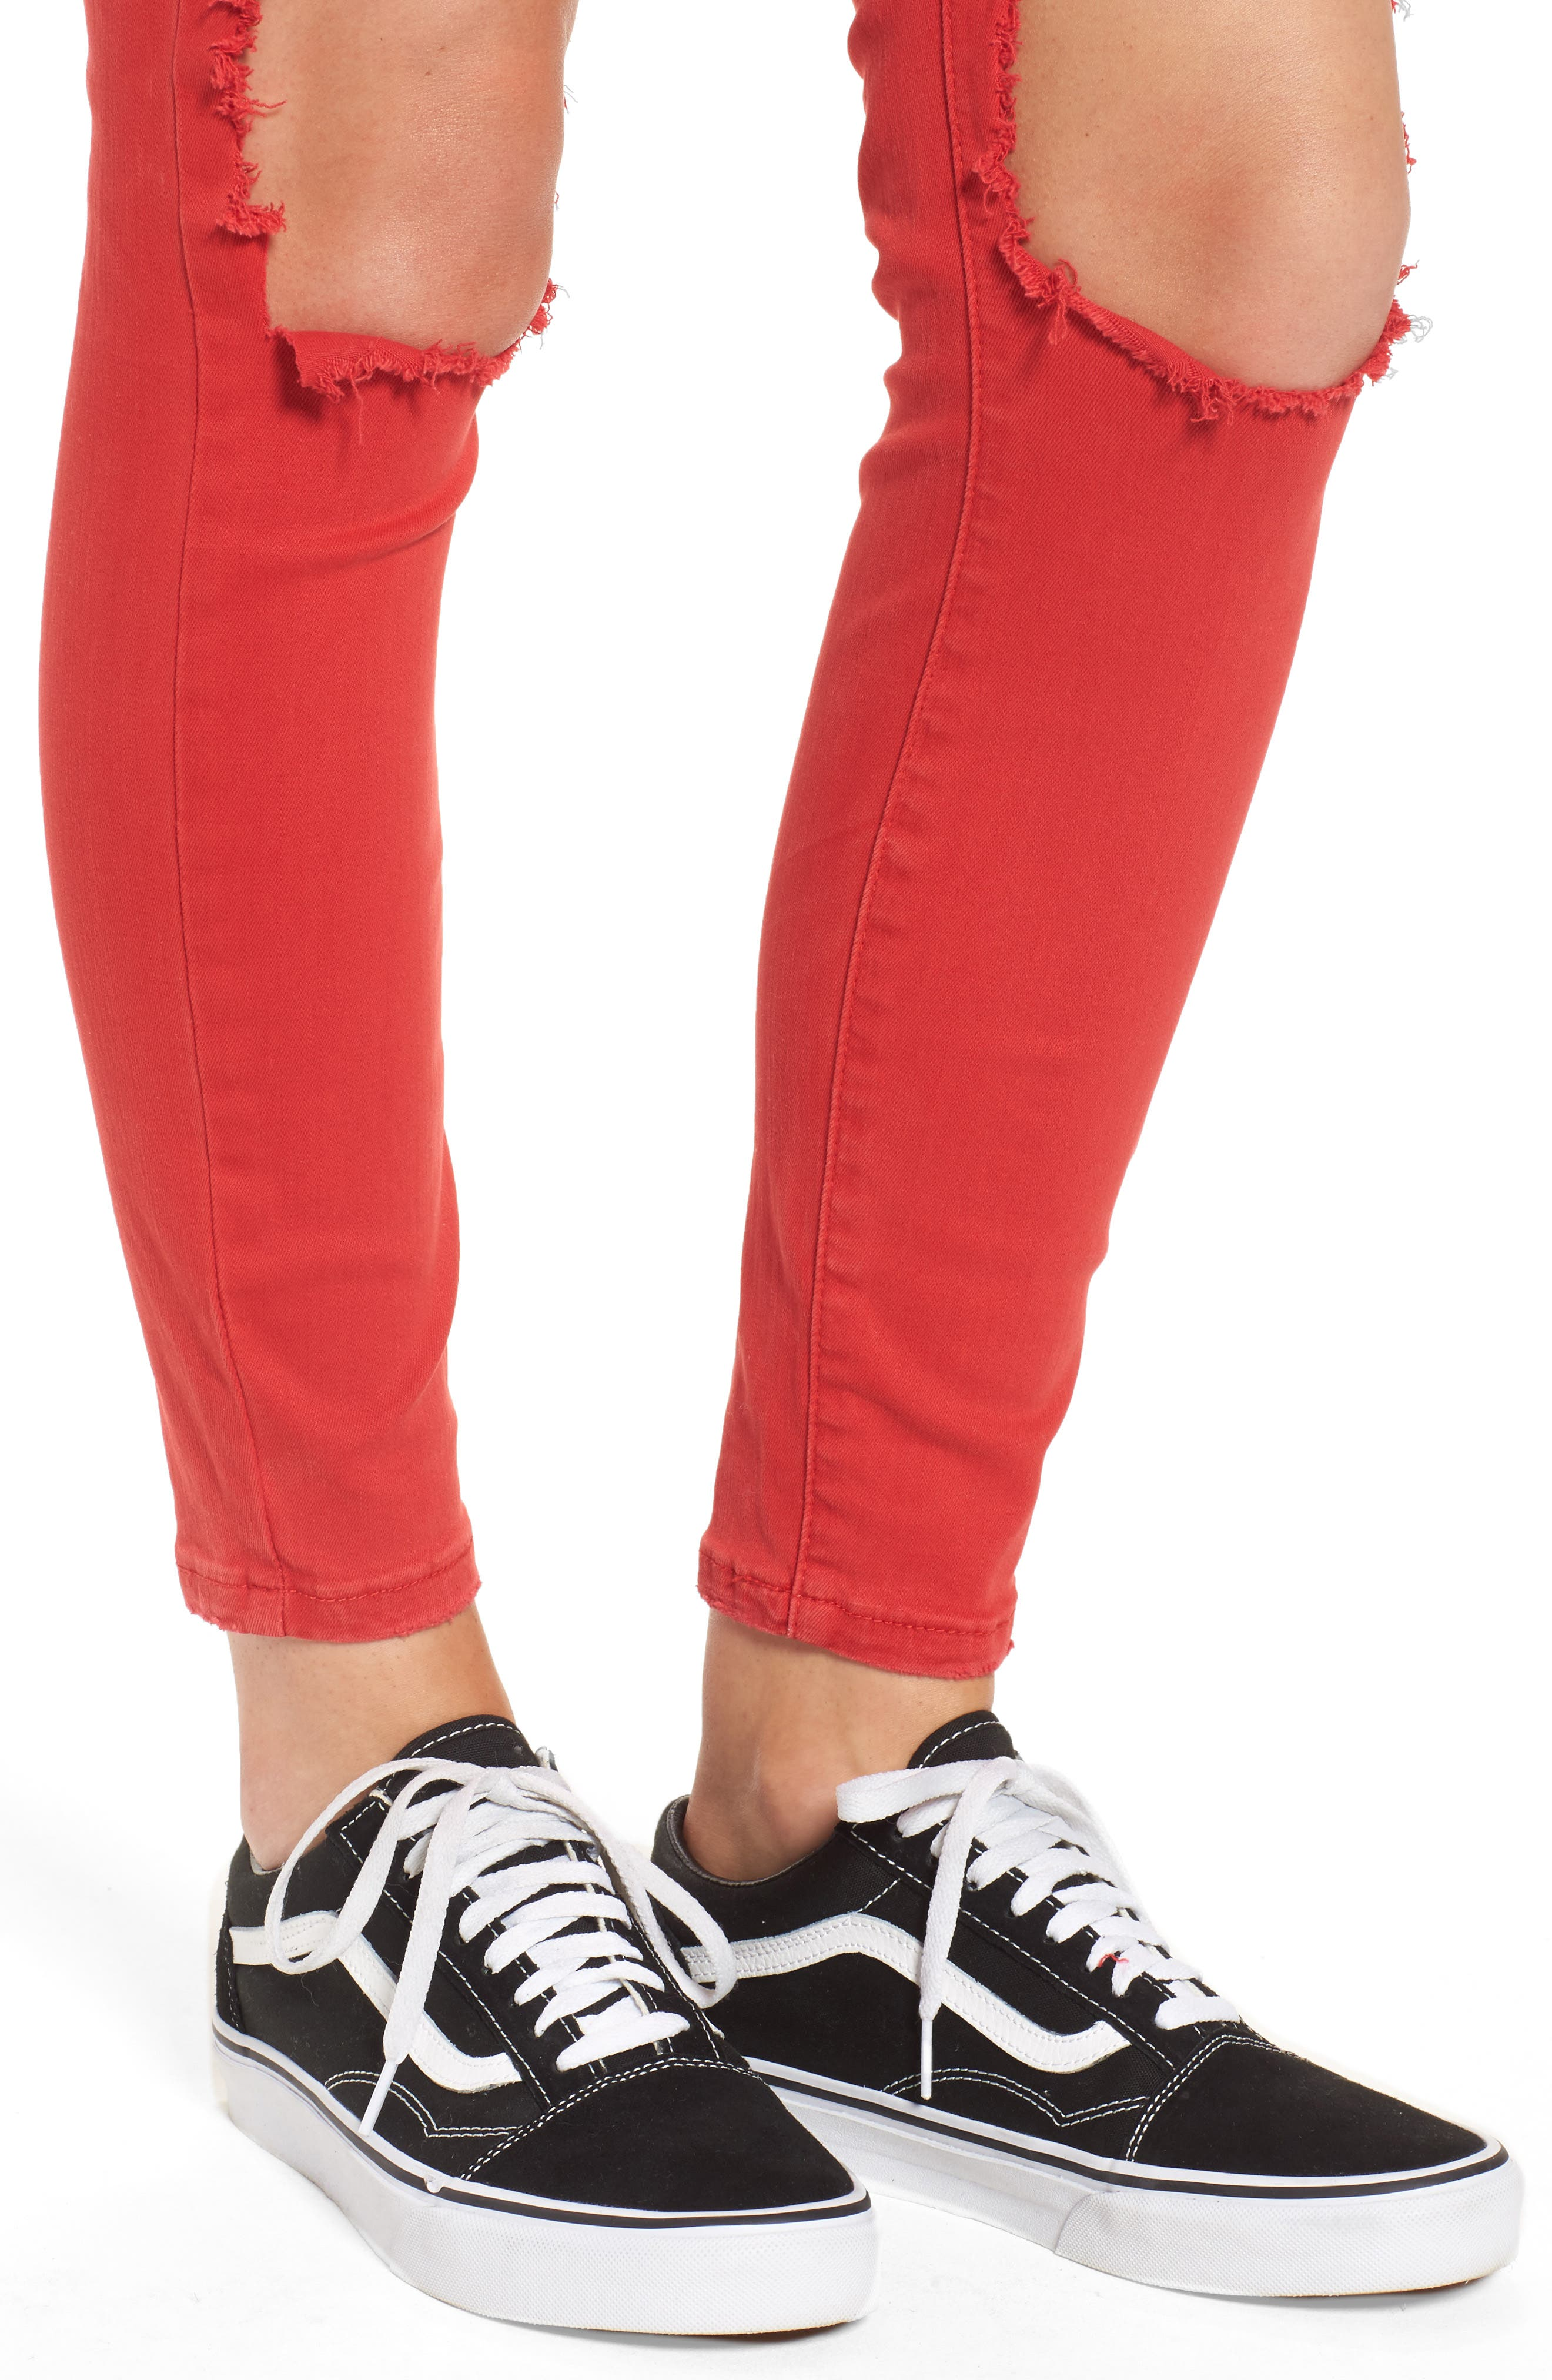 Cry Baby Ripped Skinny Jeans,                             Alternate thumbnail 4, color,